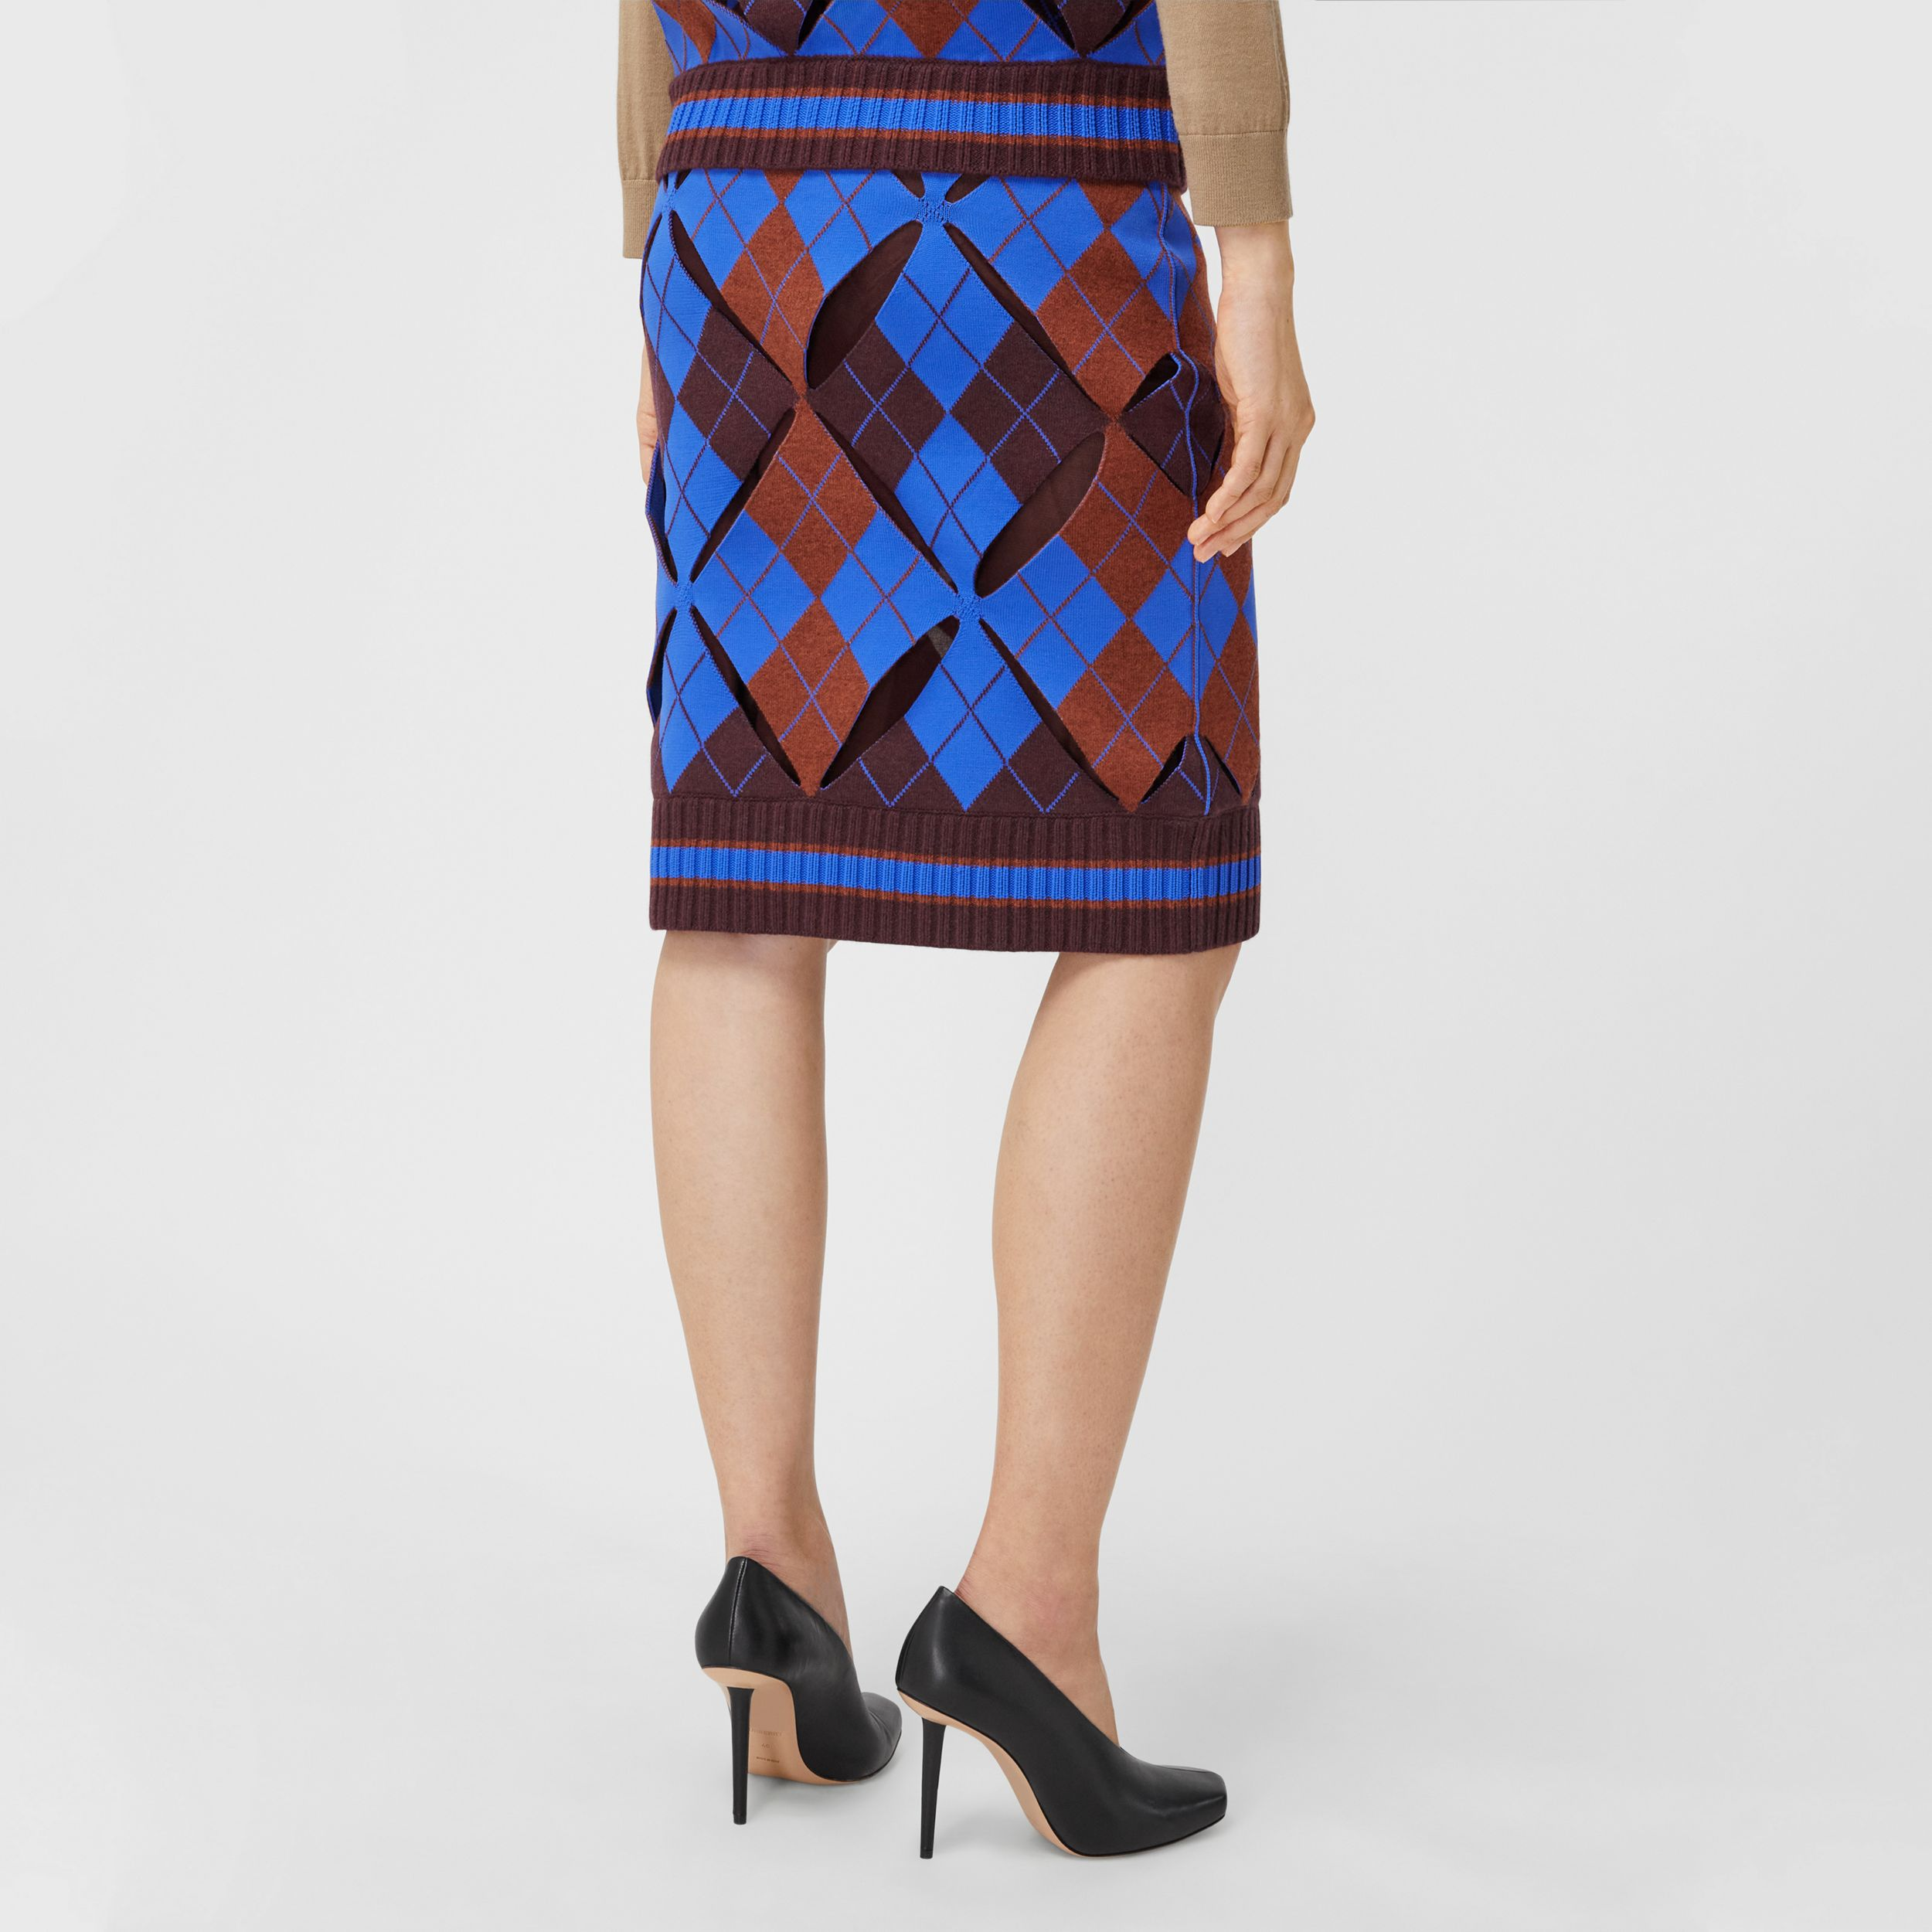 Cut-out Detail Argyle Technical Wool Jacquard Skirt in Bright Blue - Women | Burberry - 3